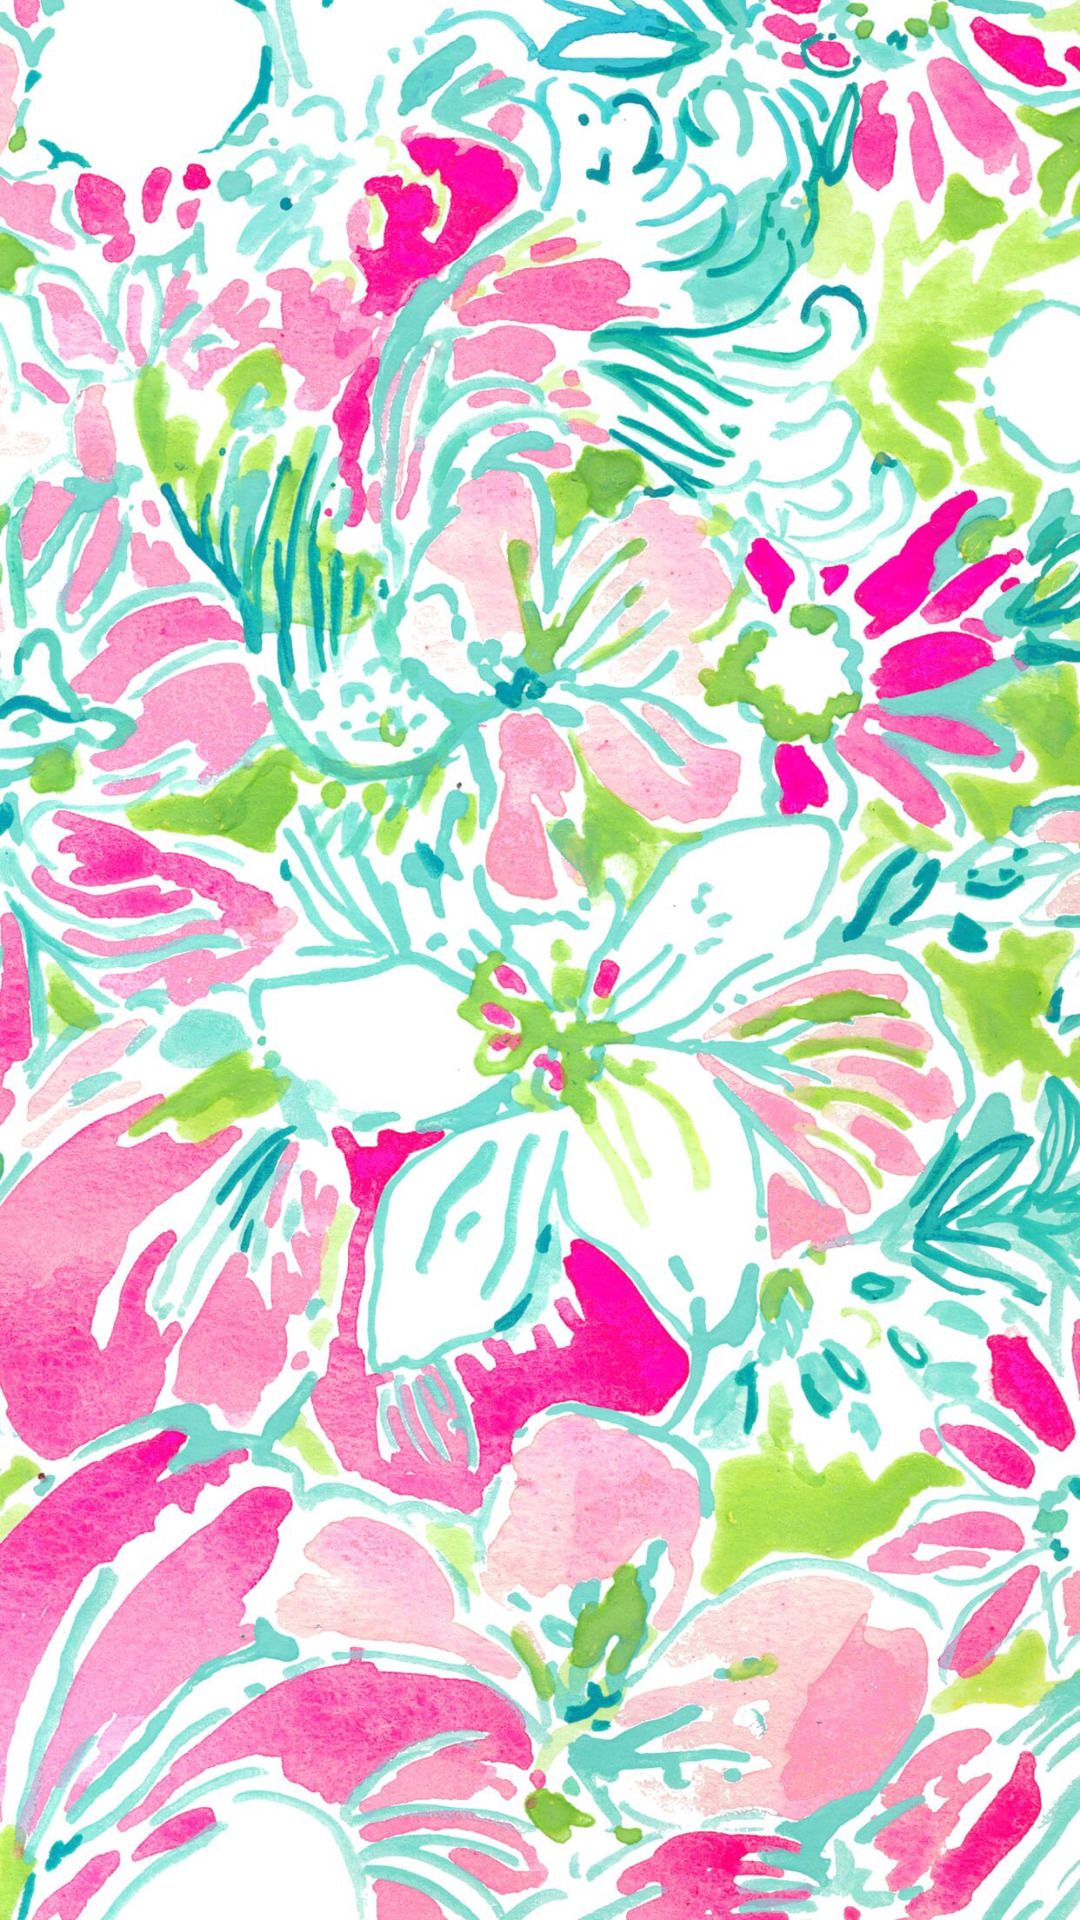 Prep of the plains photo lilly p lily pulitzer - Lilly pulitzer iphone wallpaper ...